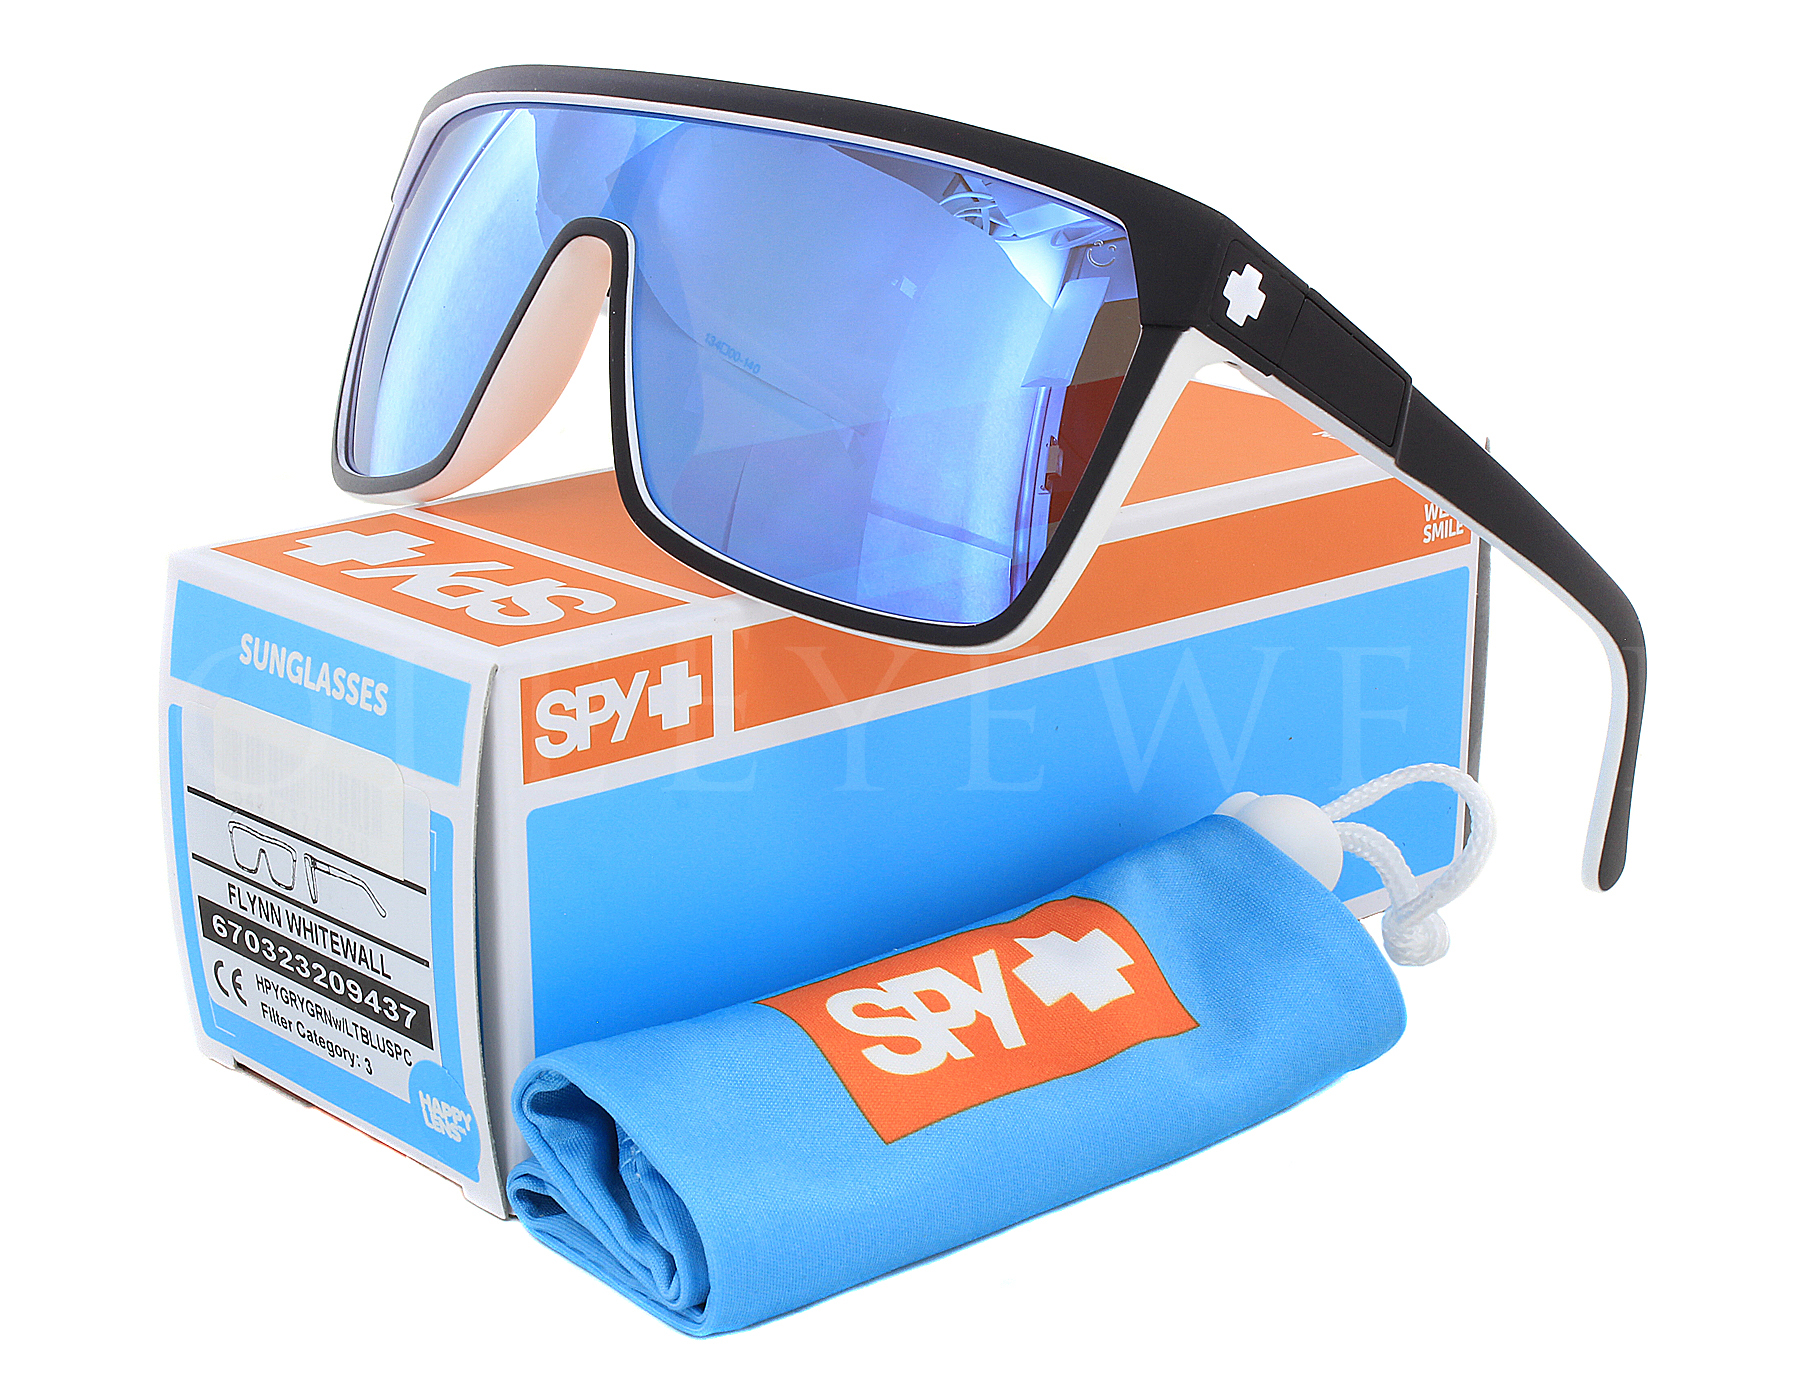 029aad0515 Details about NEW Spy Optics Flynn 670323209437 Whitewall   Light Blue  Spectra Sunglasses